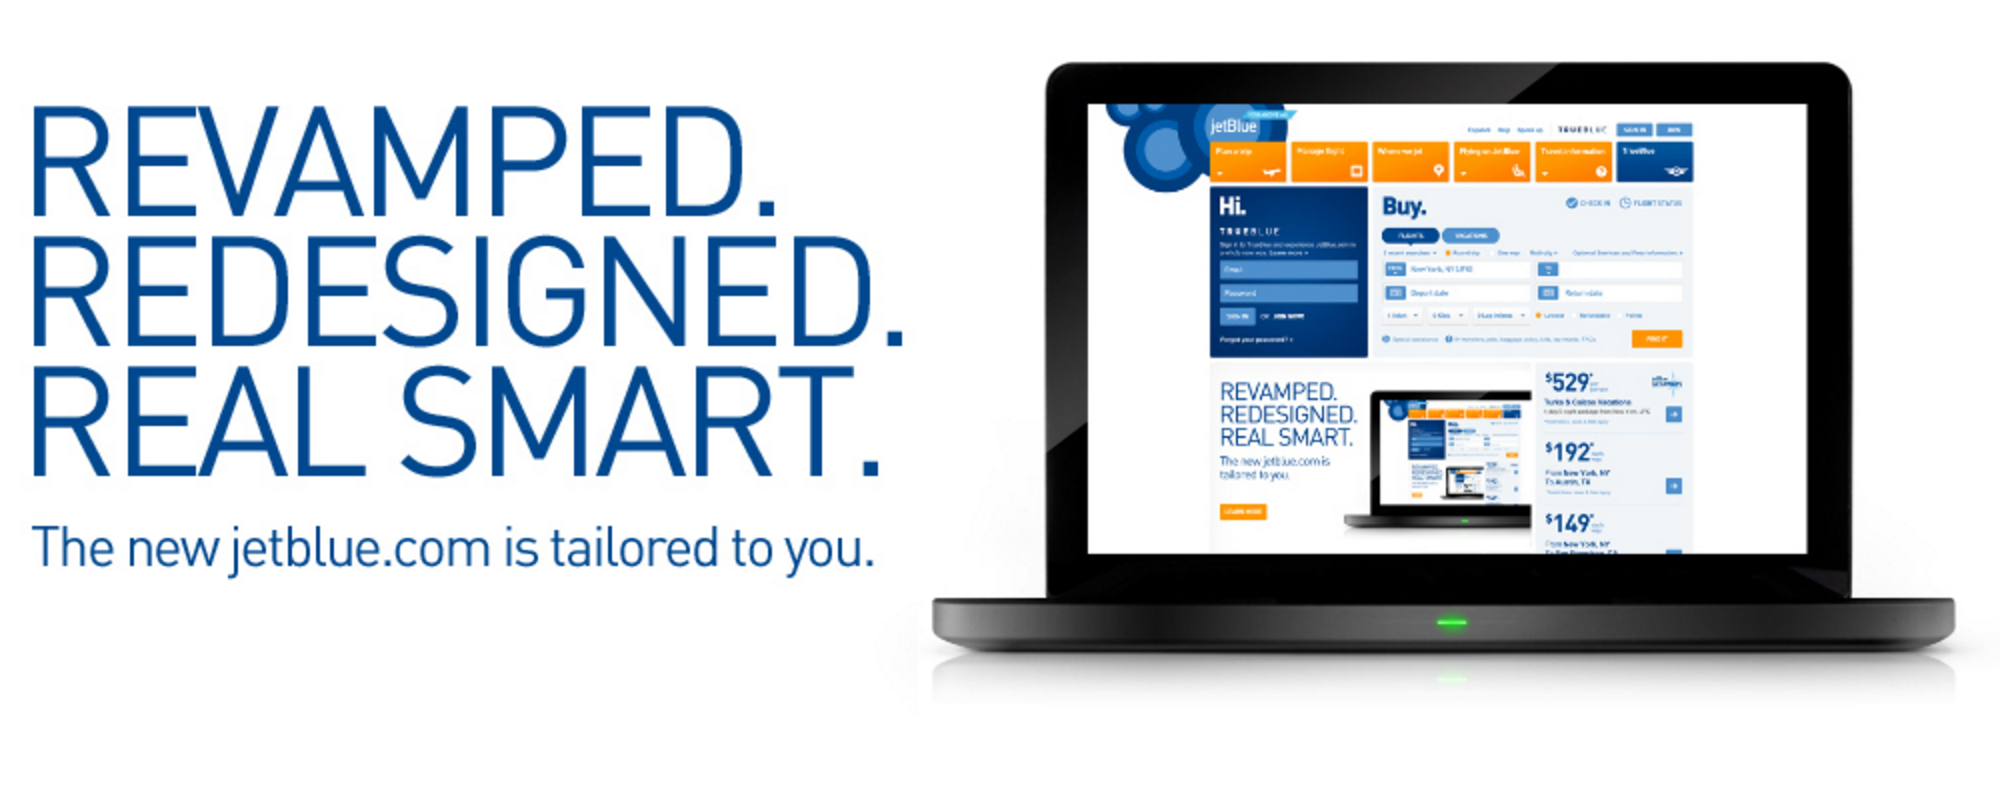 JetBlue created an intuitive, unified digital experience across all of its channels.